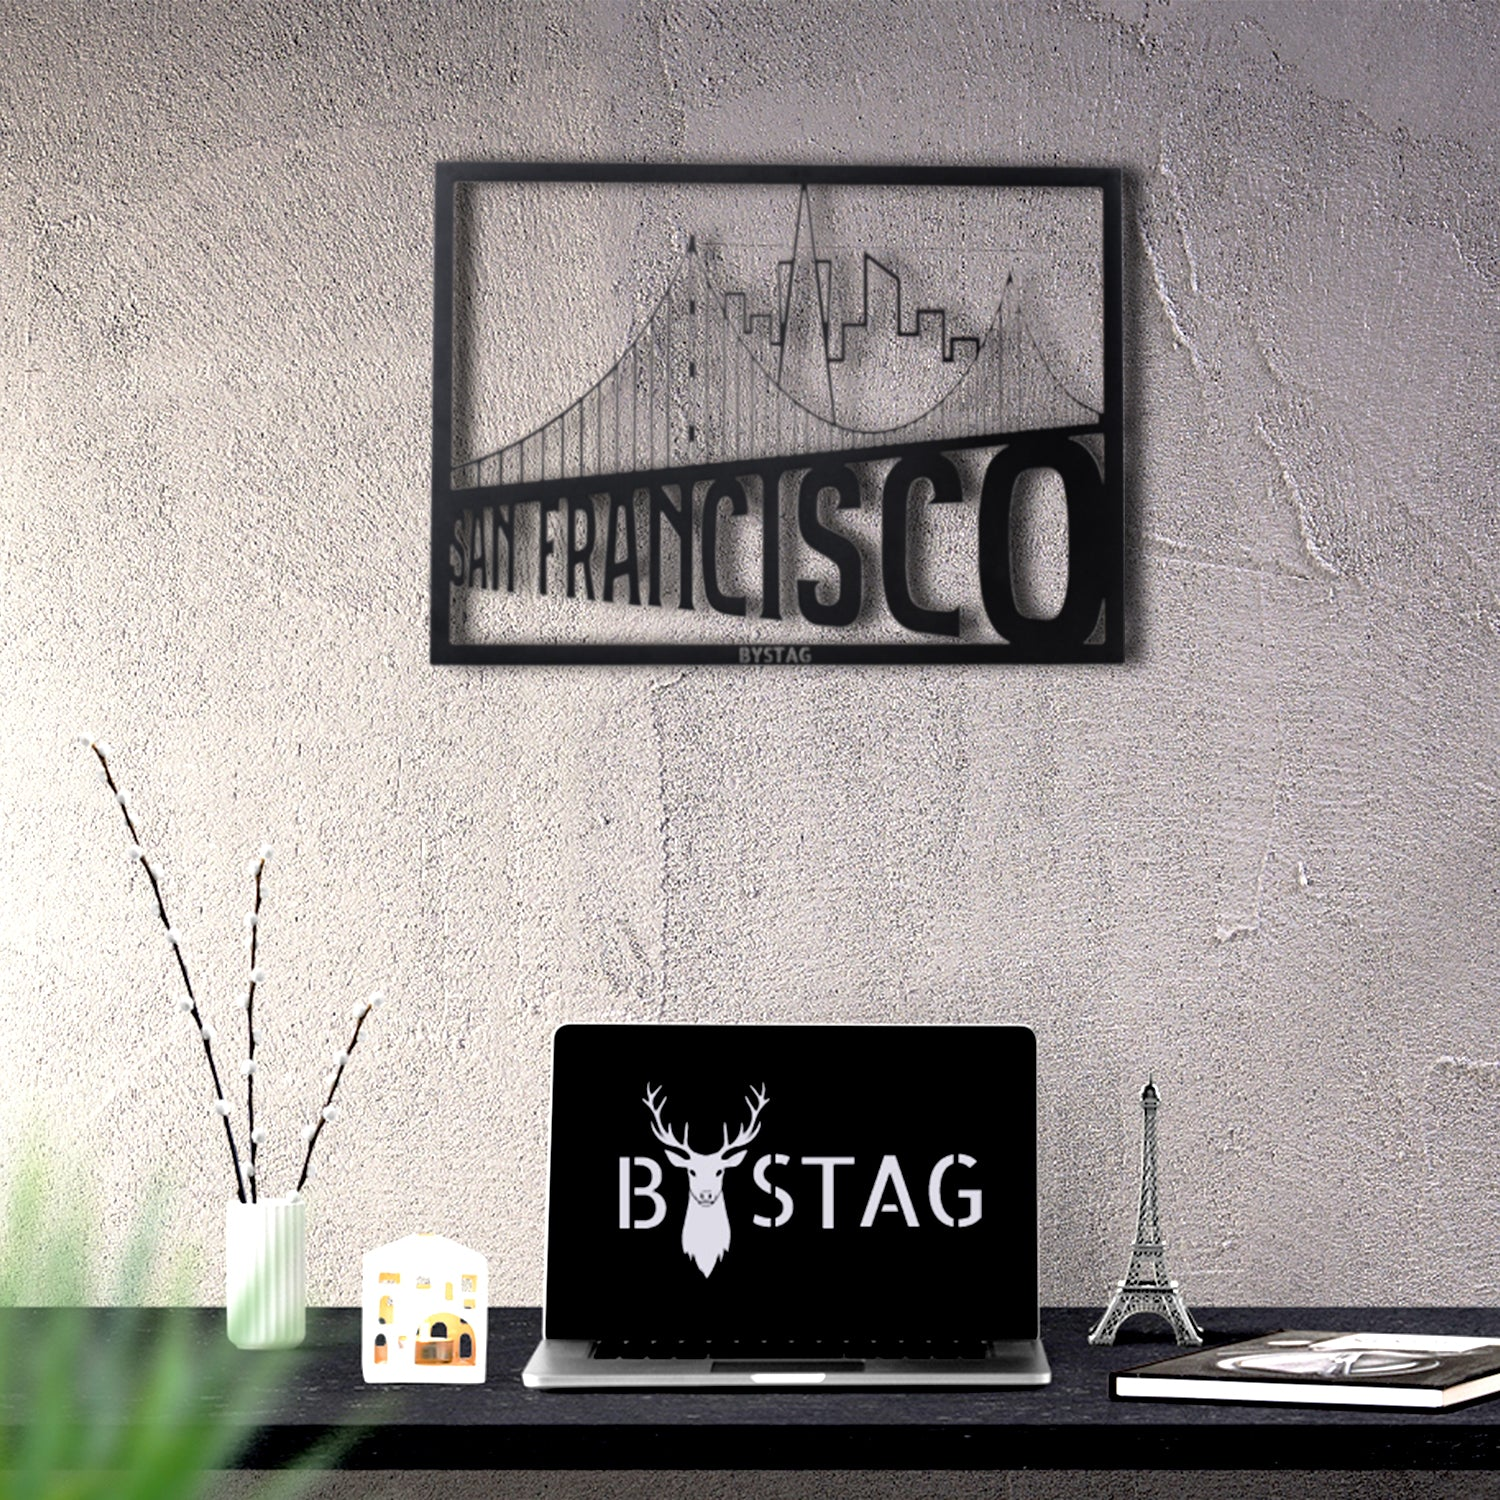 Bystag metal dekoratif duvar aksesuarı san francisco- Bystag metal wall art-wall art-wall decor-metal wall decor-san francisco